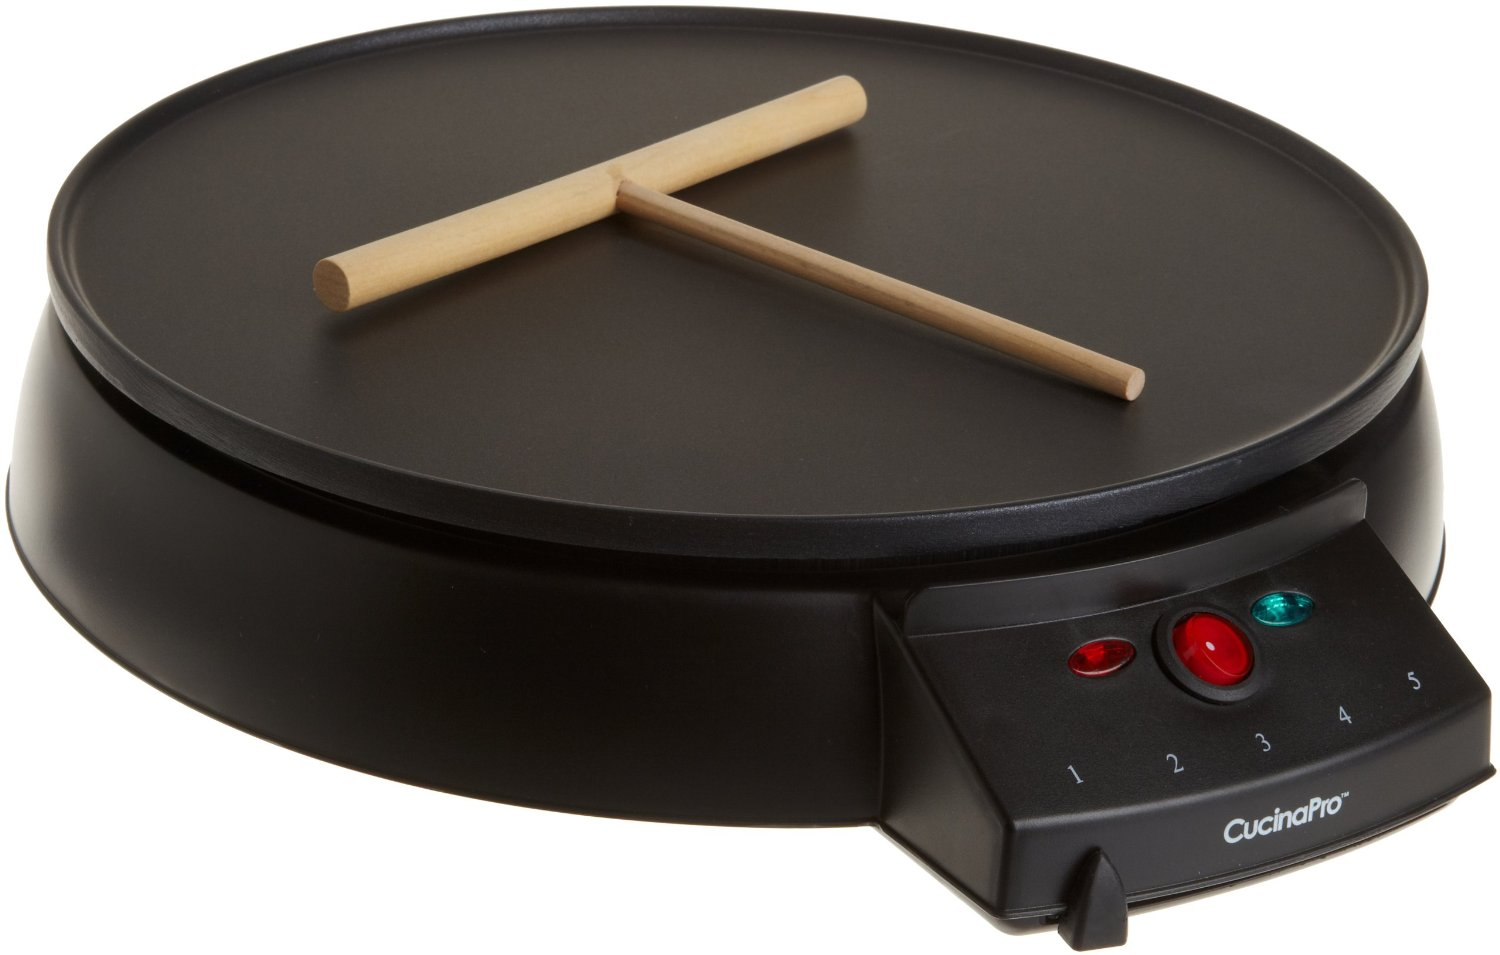 What to Consider When Buying a Crepe Maker for the First Time